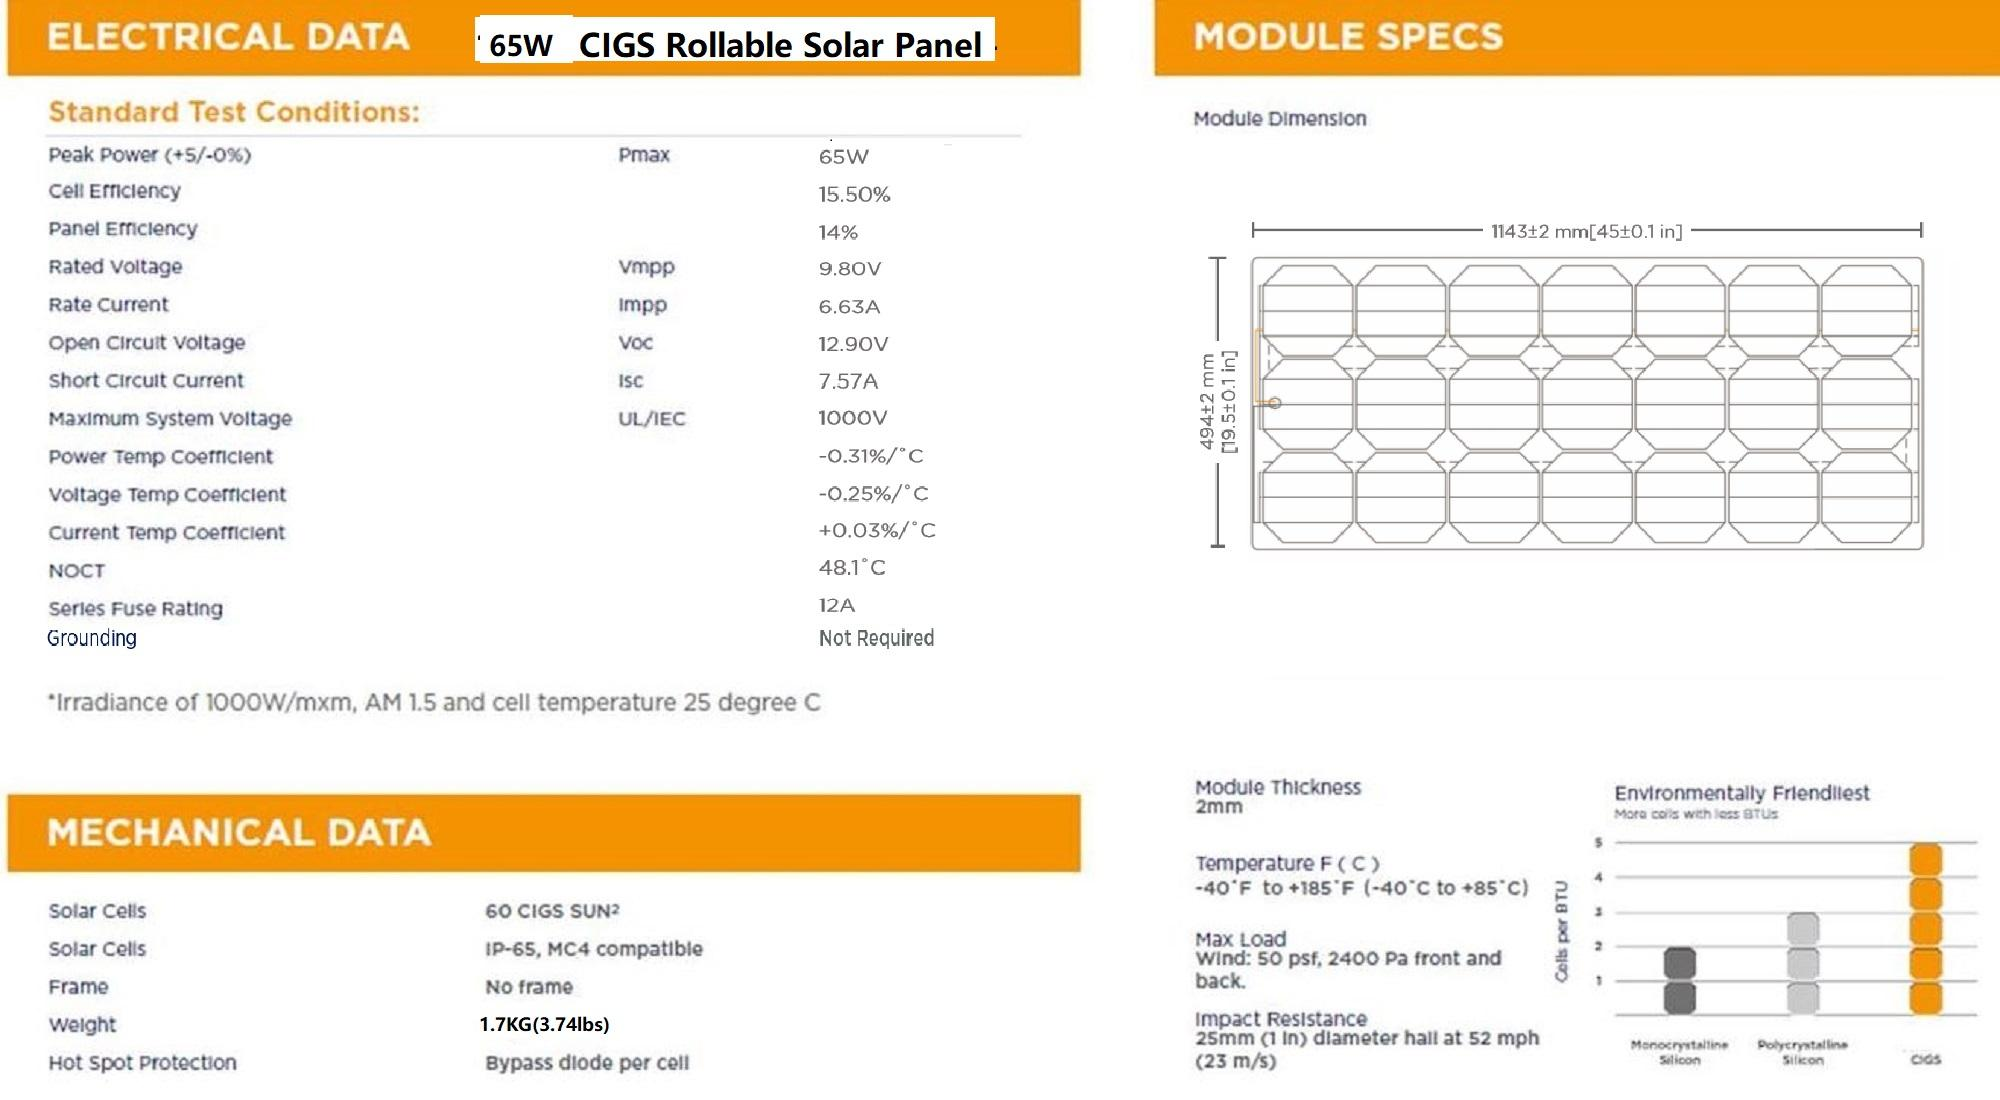 65W Rollable Solar Panel